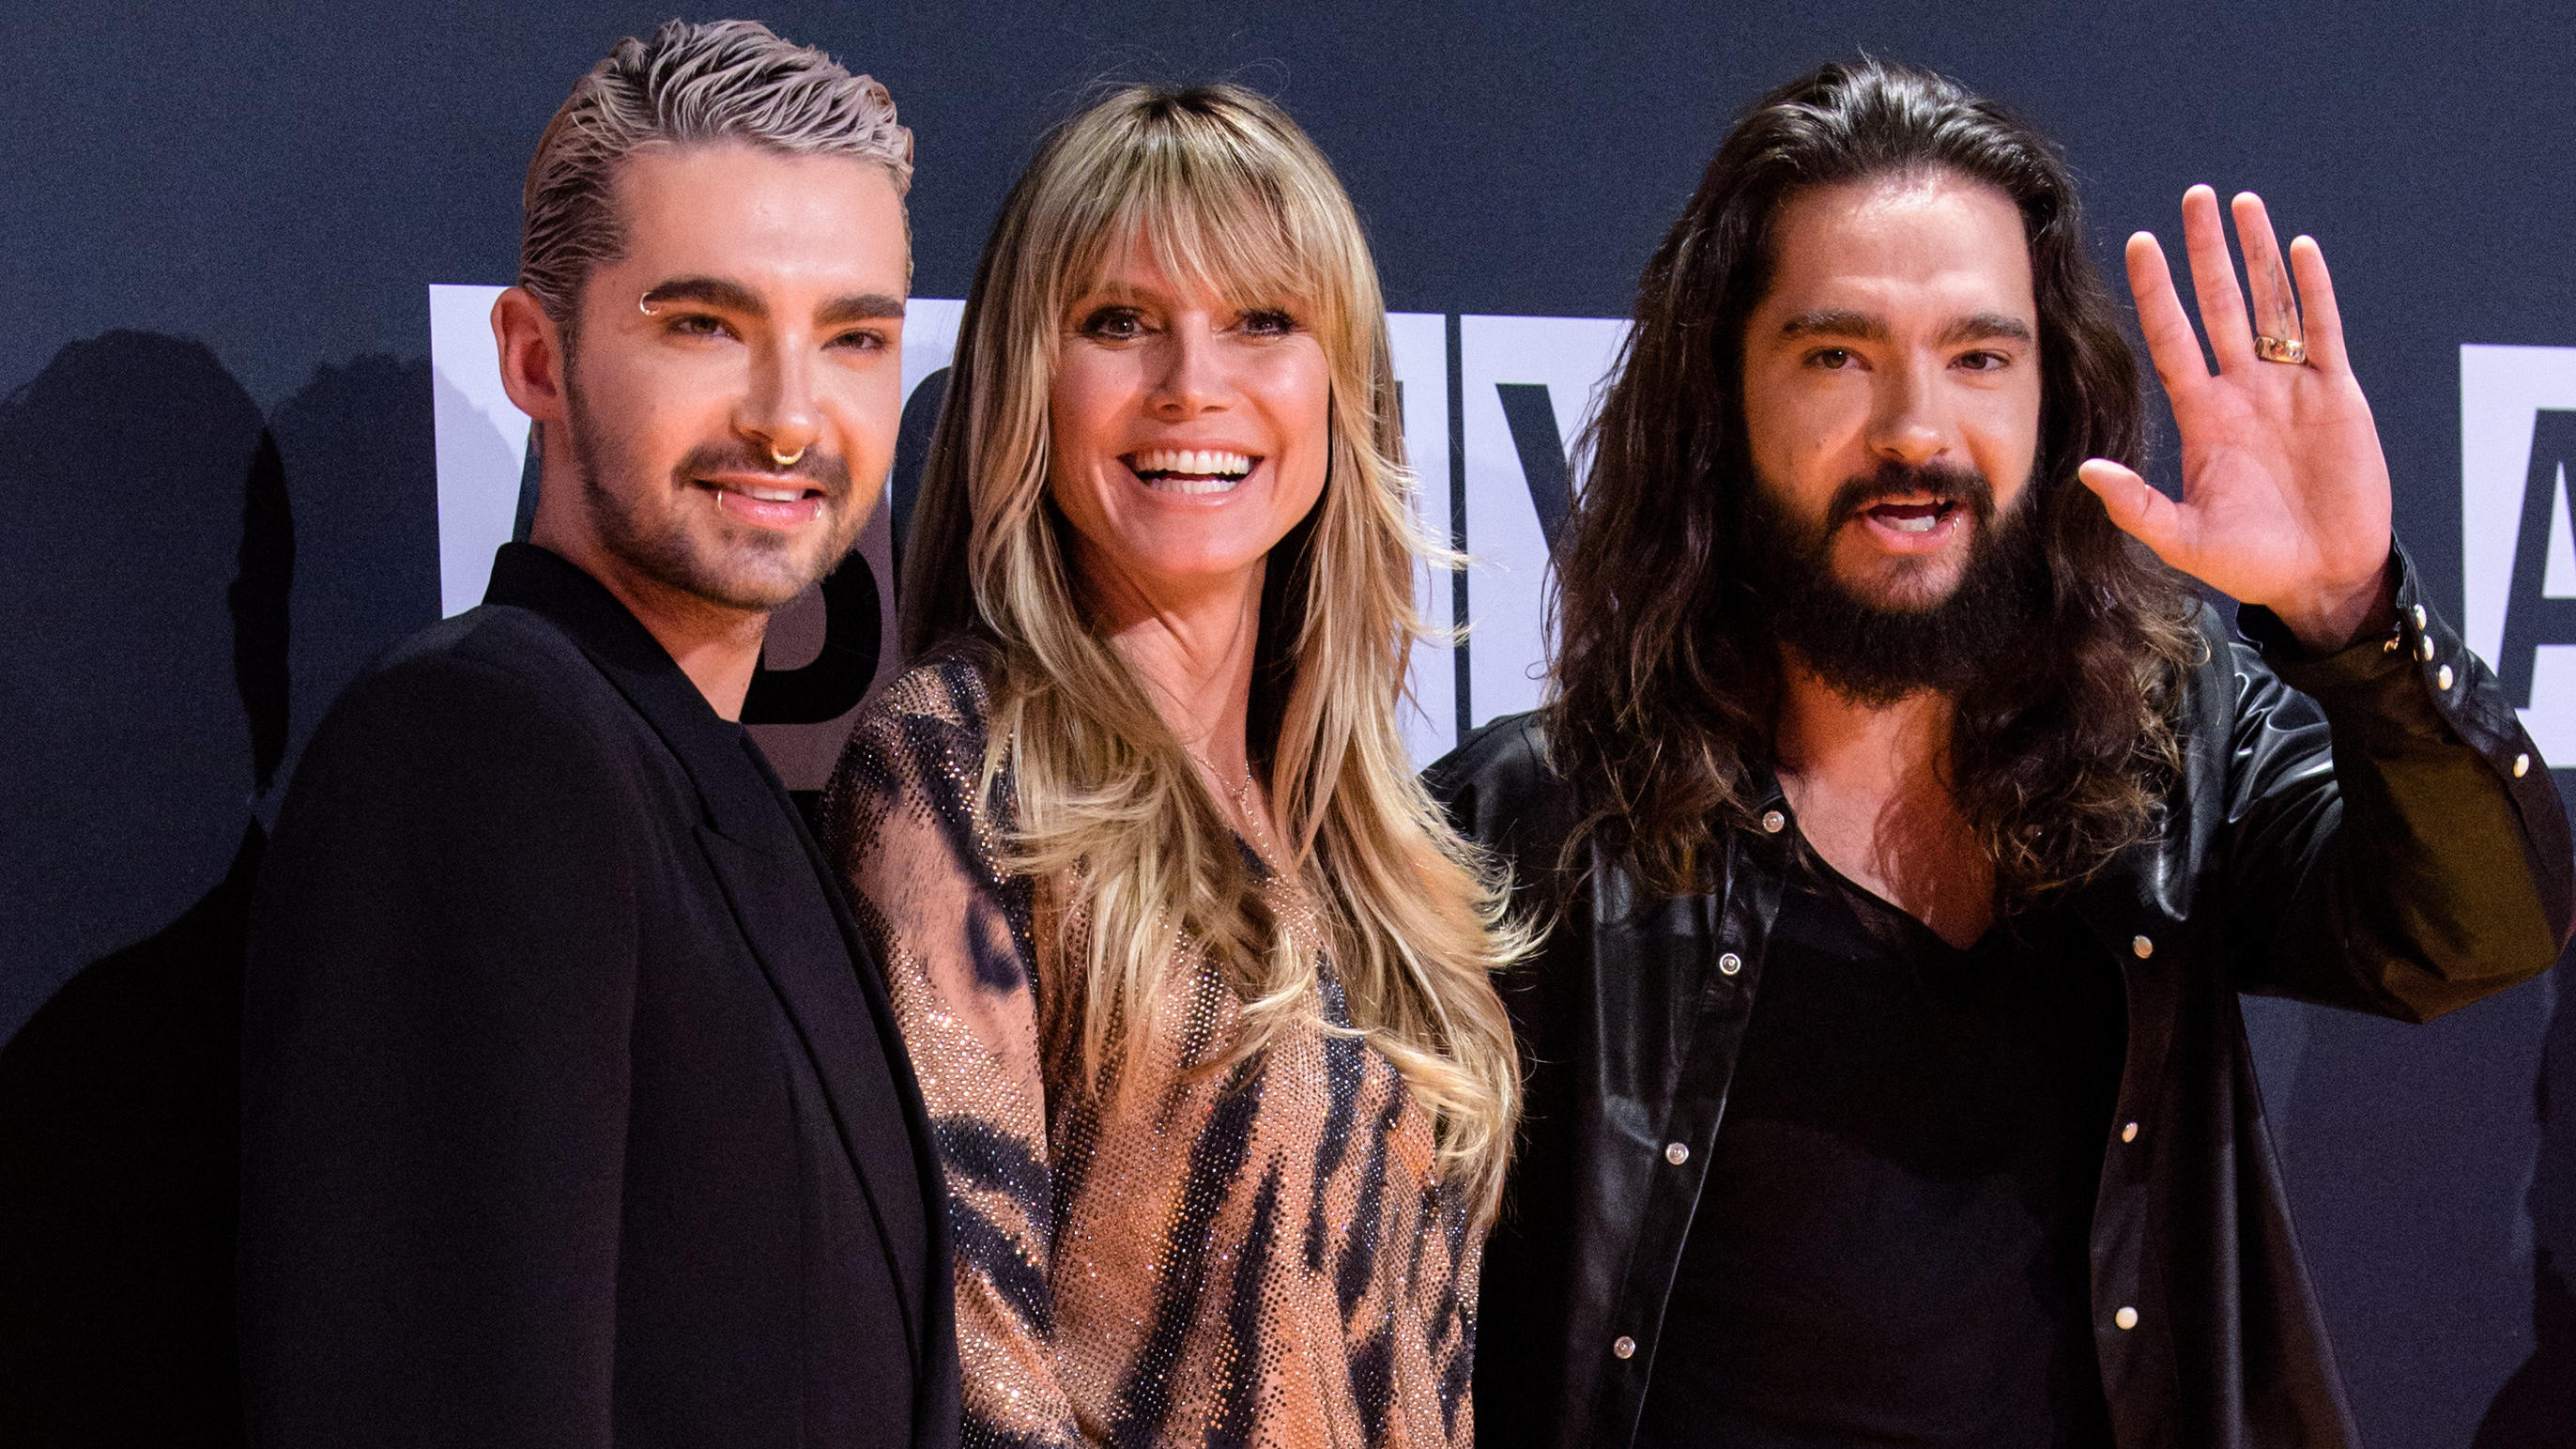 Bill Kaulitz mit Heidi Klum und Zwillingsbruder Tom Kaulitz bei den About You Awards 2019